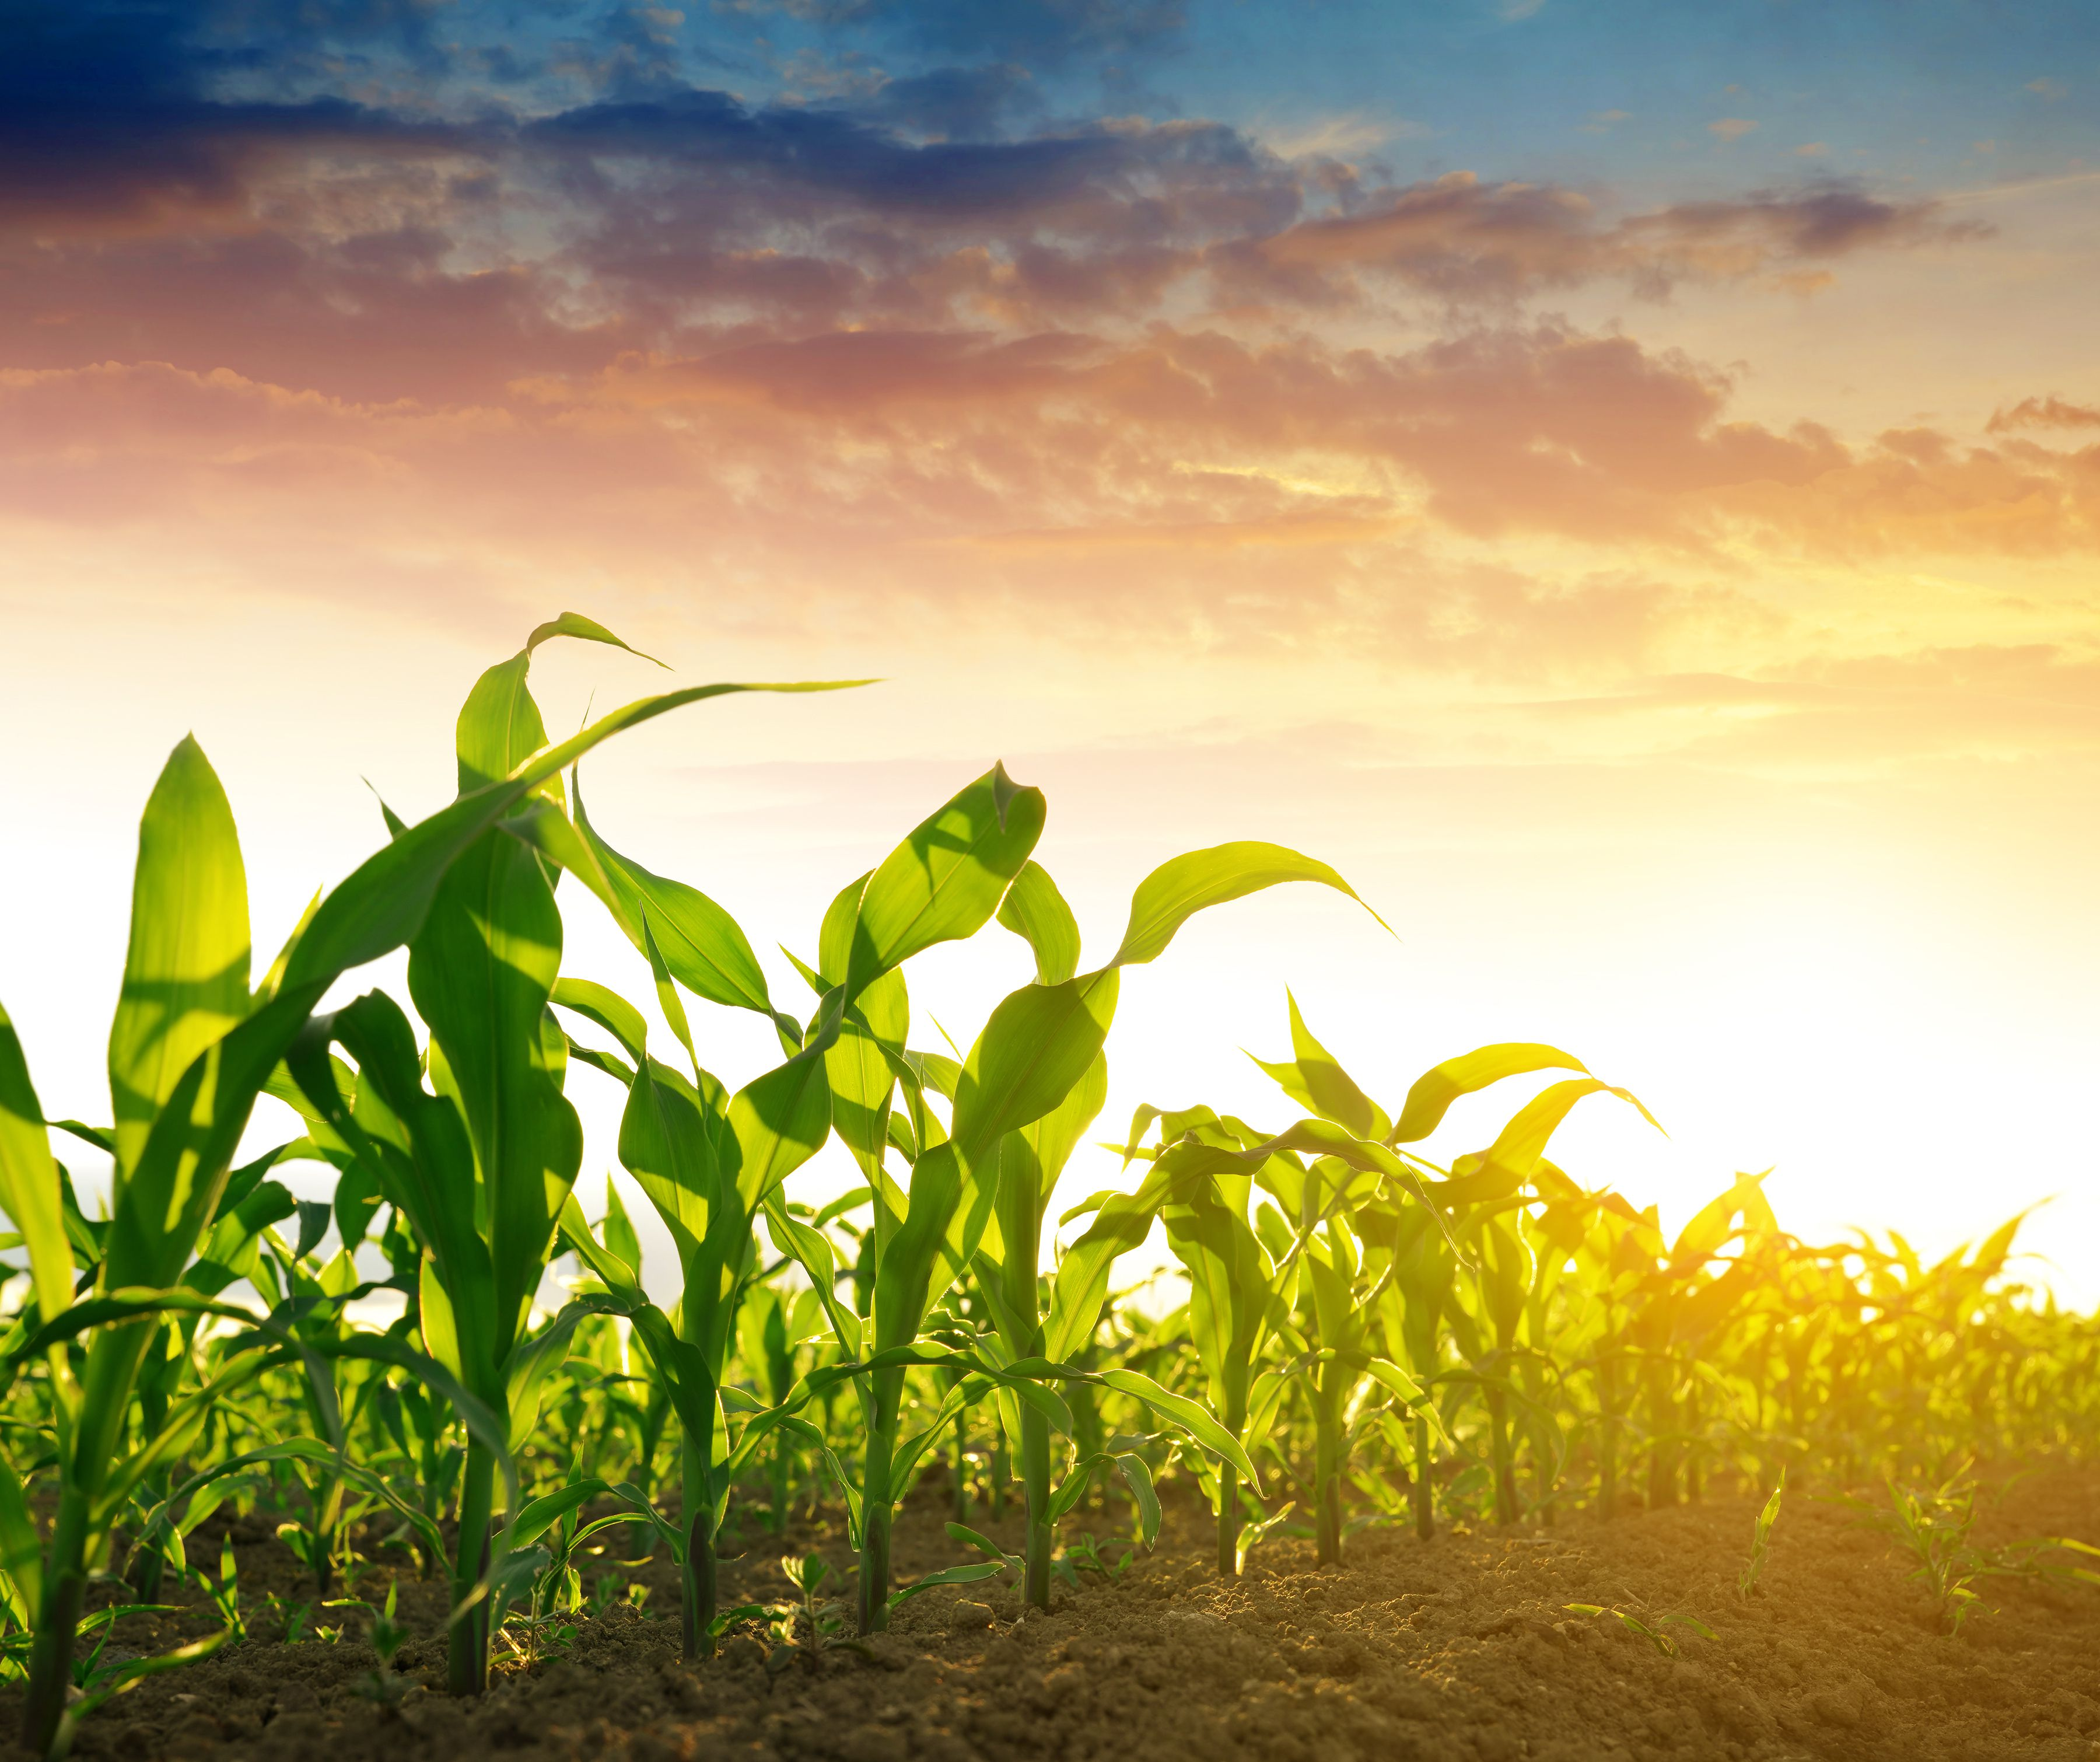 Corn versus Soybeans The Farmers Choice